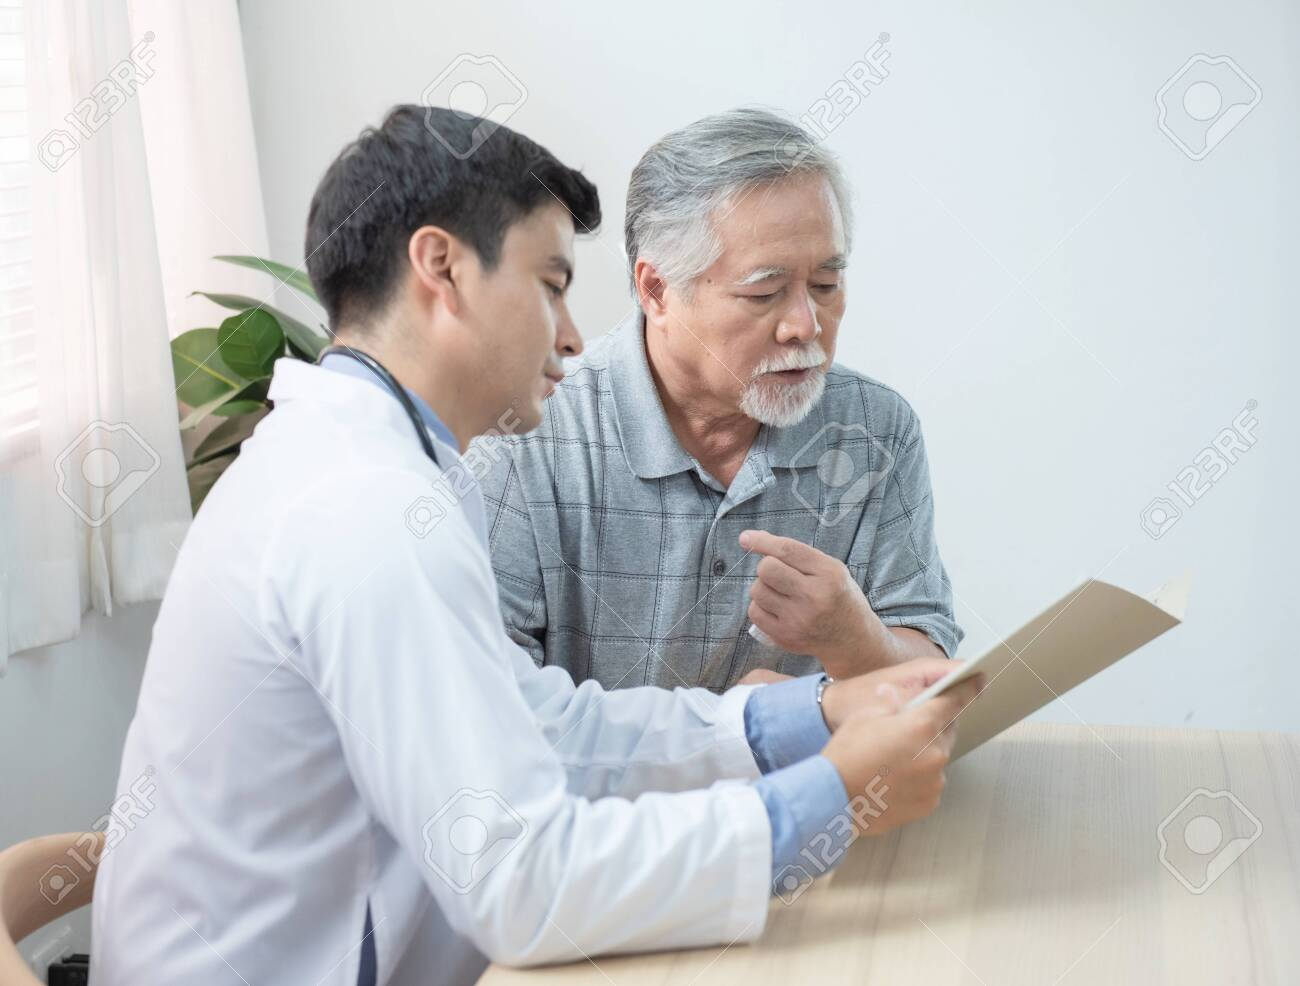 Young caucasian doctor read and explaining consult medical test document for asian elder senior man while visit patient at home.healthcare and medical concept. - 143763636